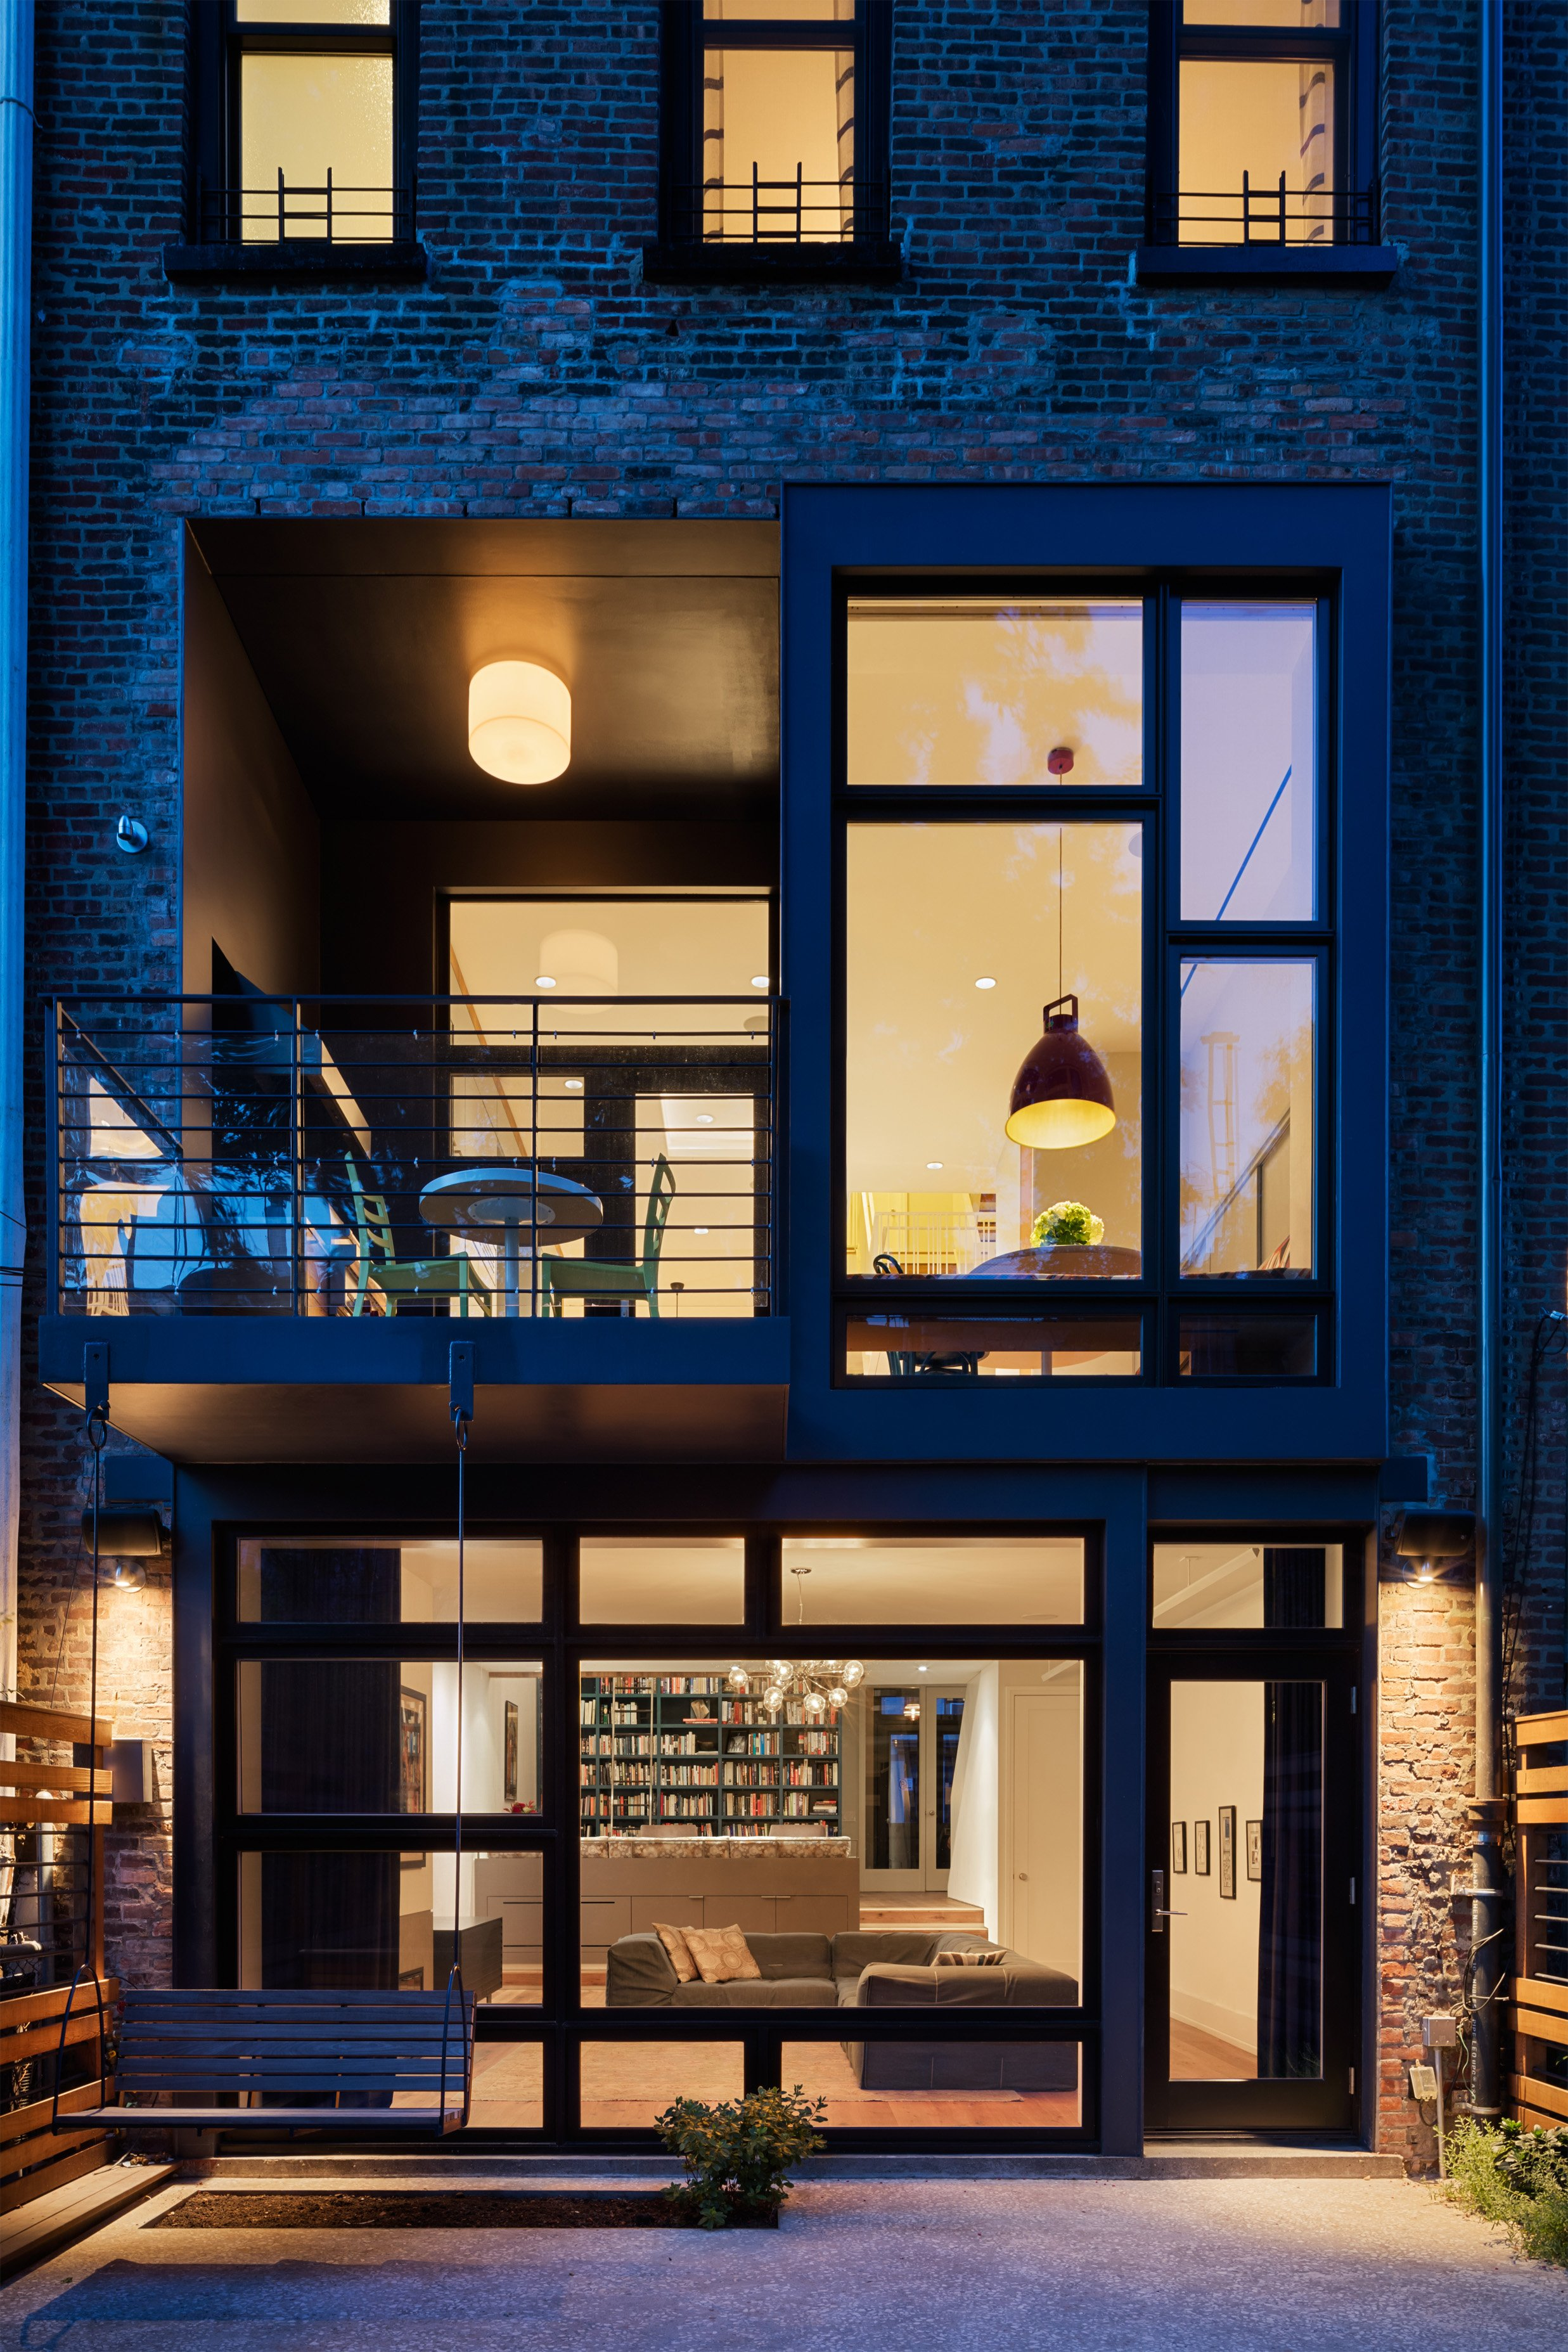 edtop rchitect's ast Village eno ombines Mid-entury Modern ... - ^